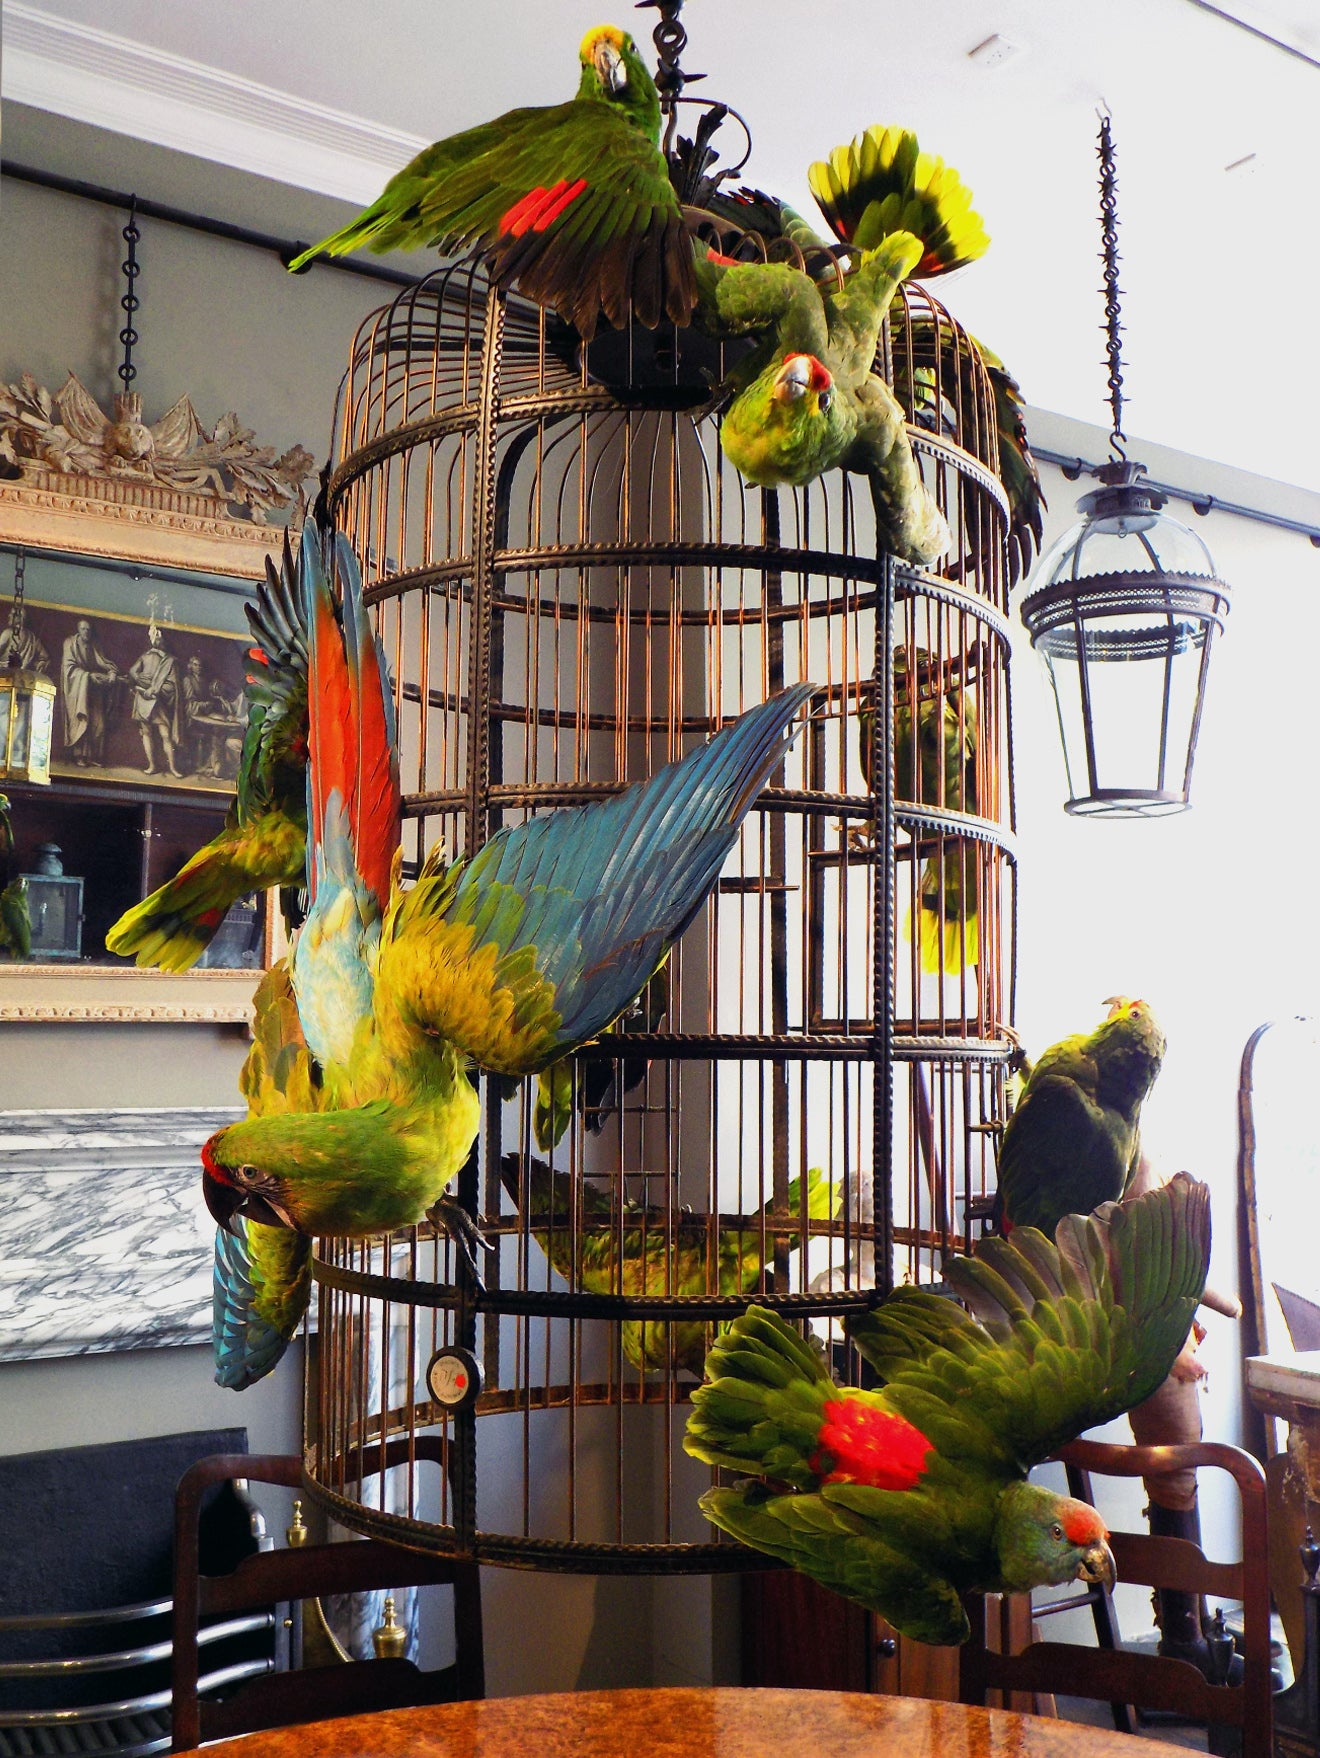 exotic bird taxidermy art on display at Jamb Pimlico Road, London